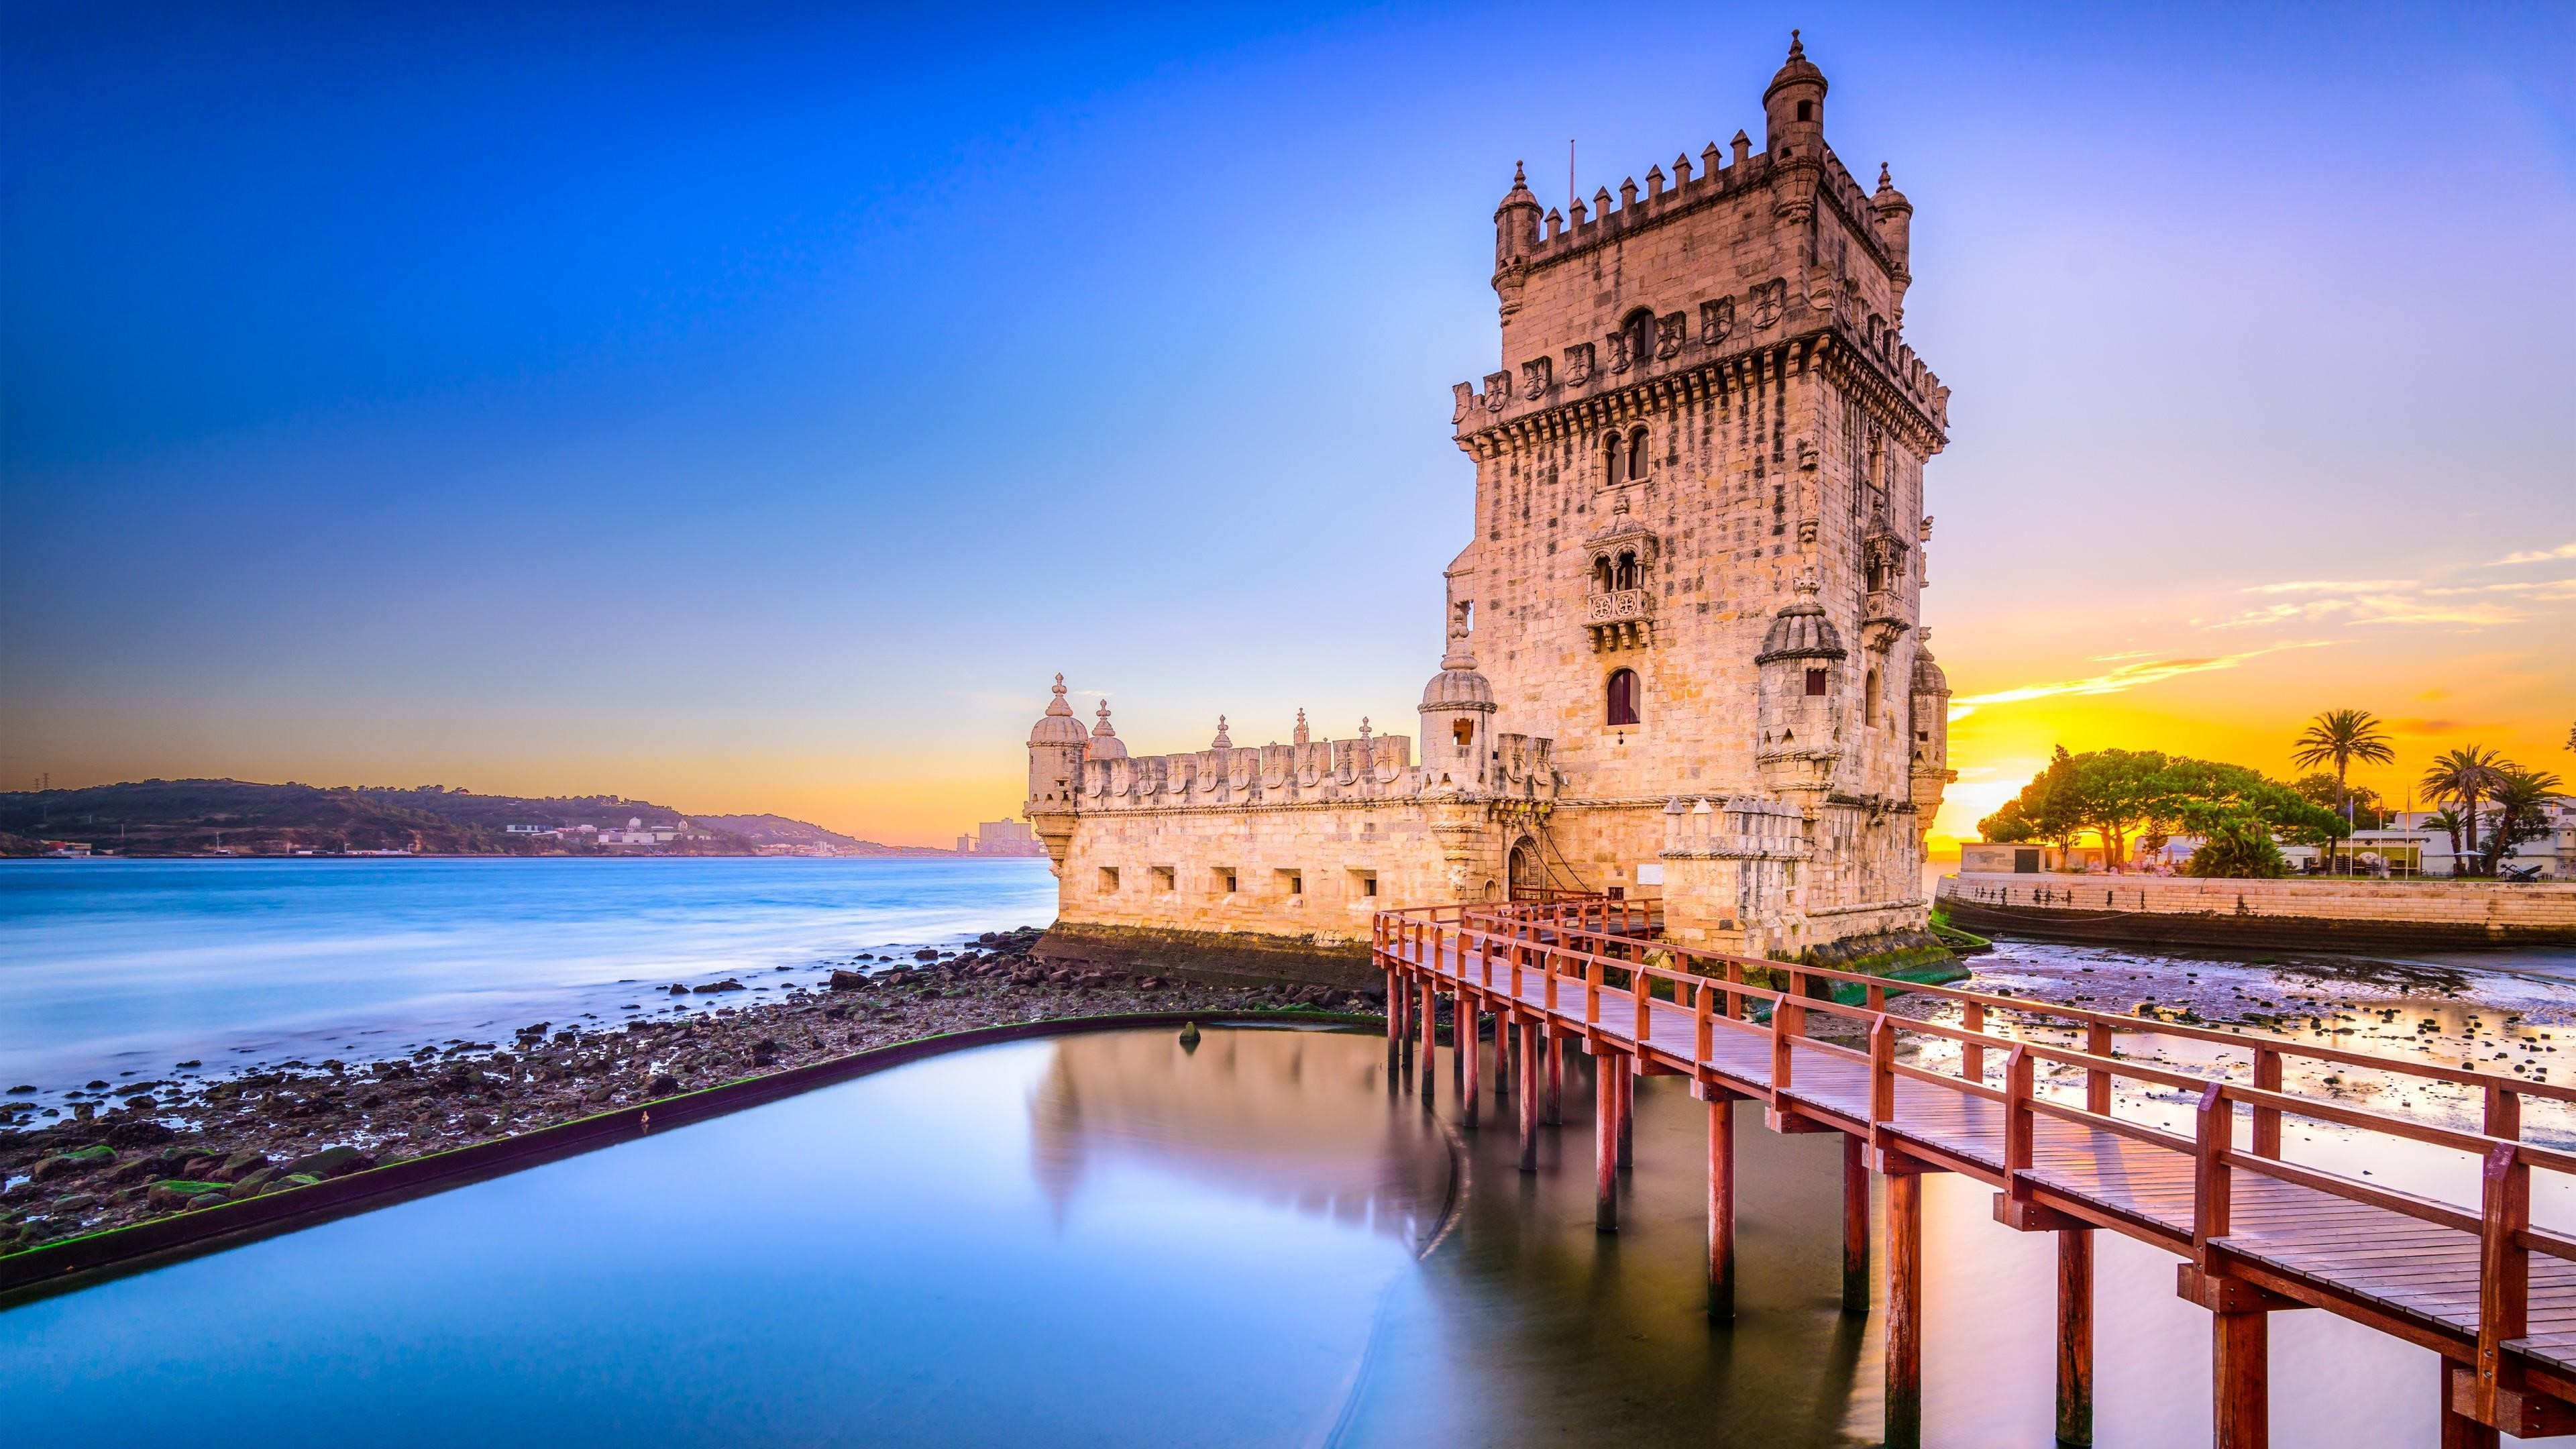 Belem Tower in Lisbon Tourist Attraction Portugal 4K Wallpapers 3840x2160